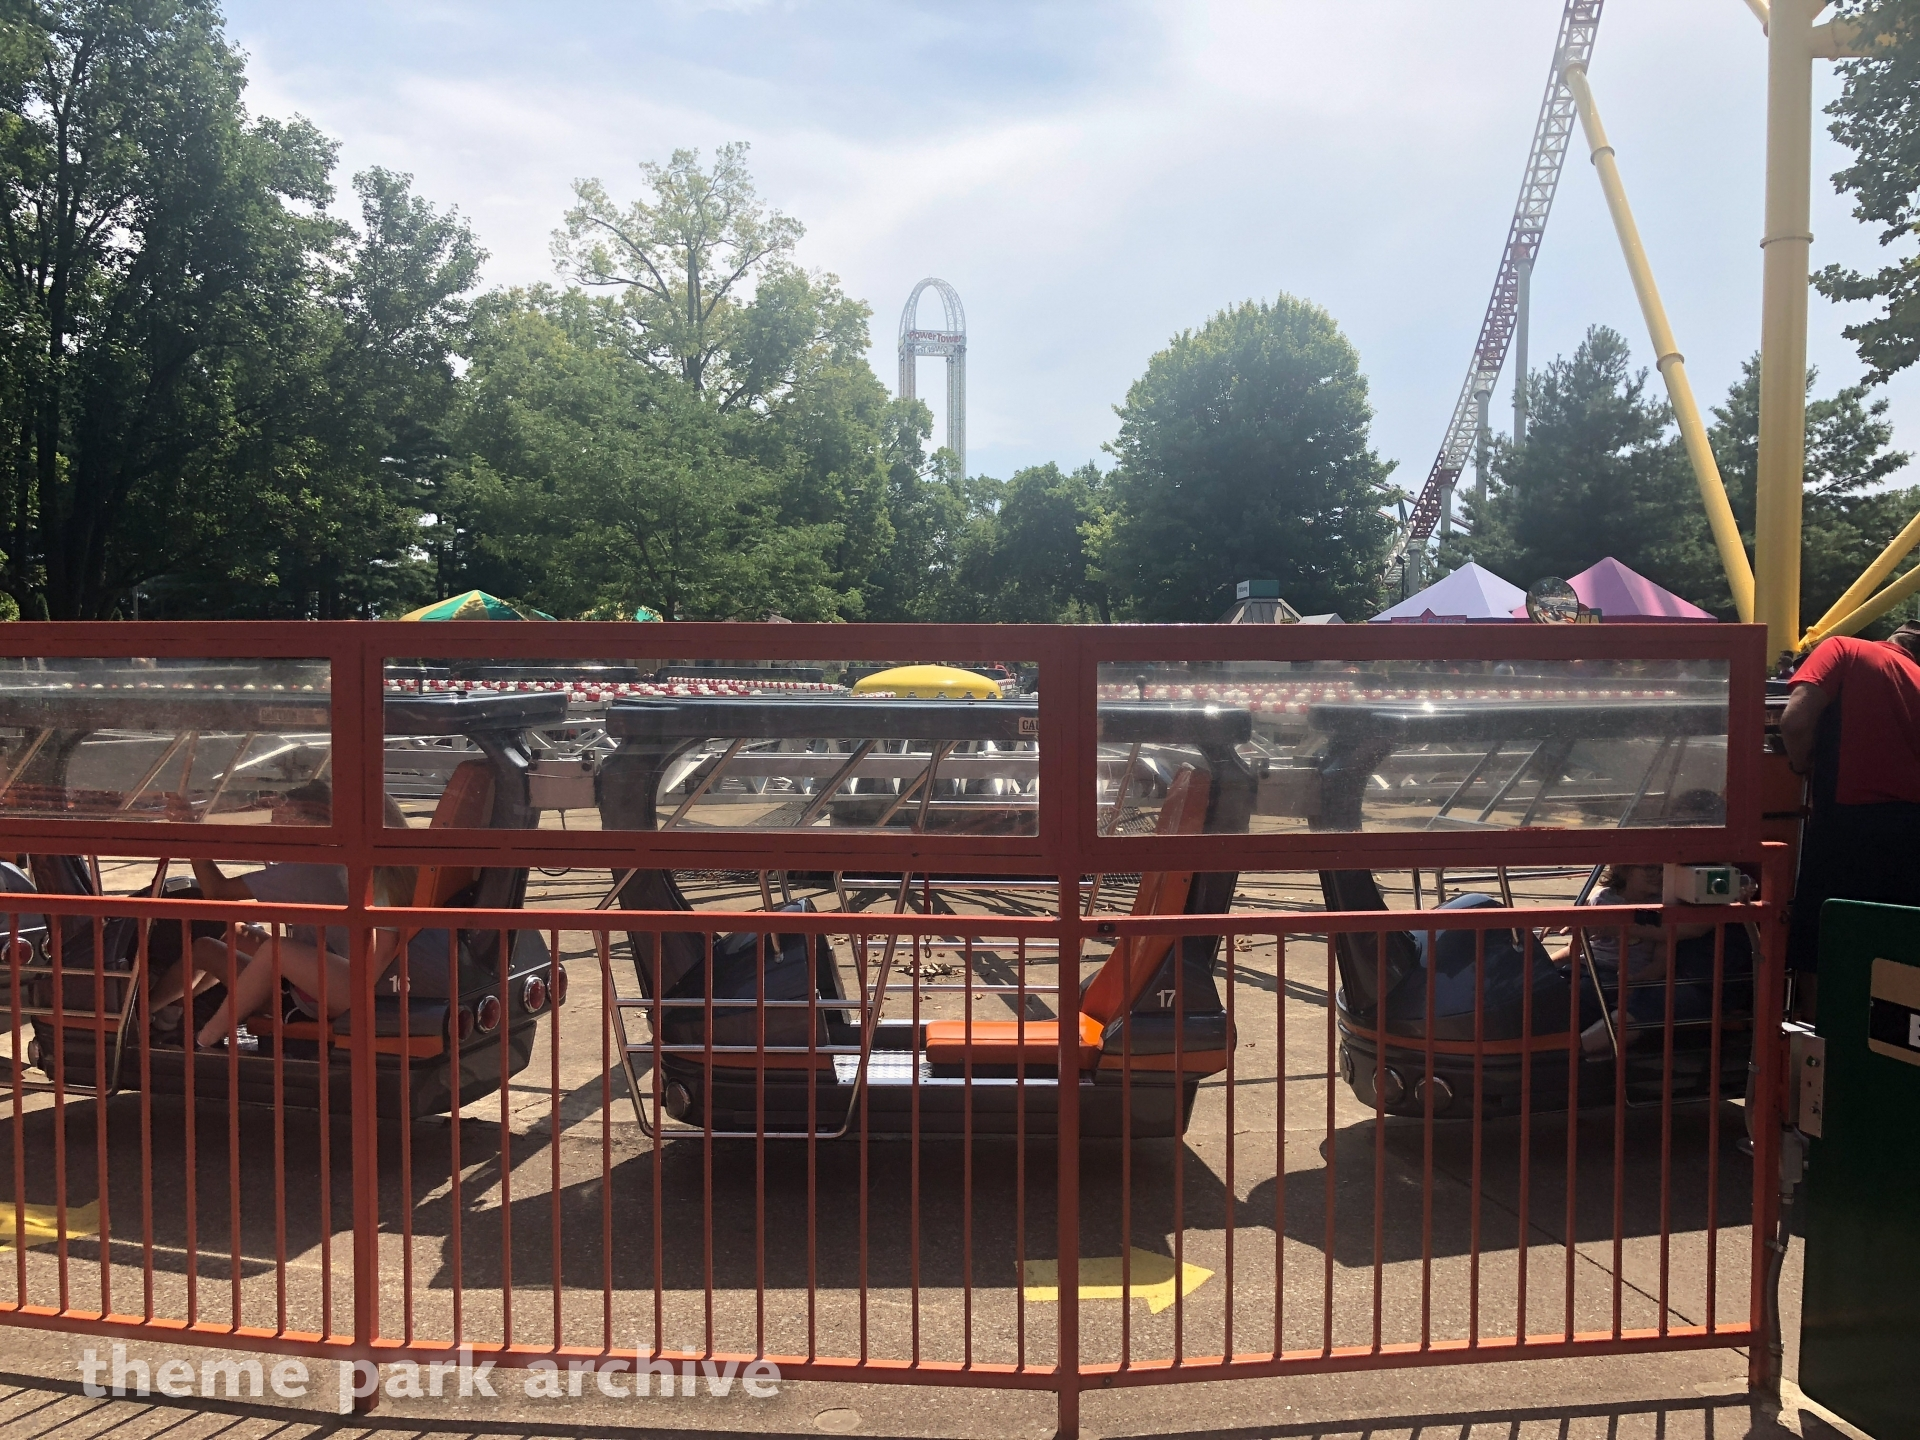 Witches' Wheel at Cedar Point